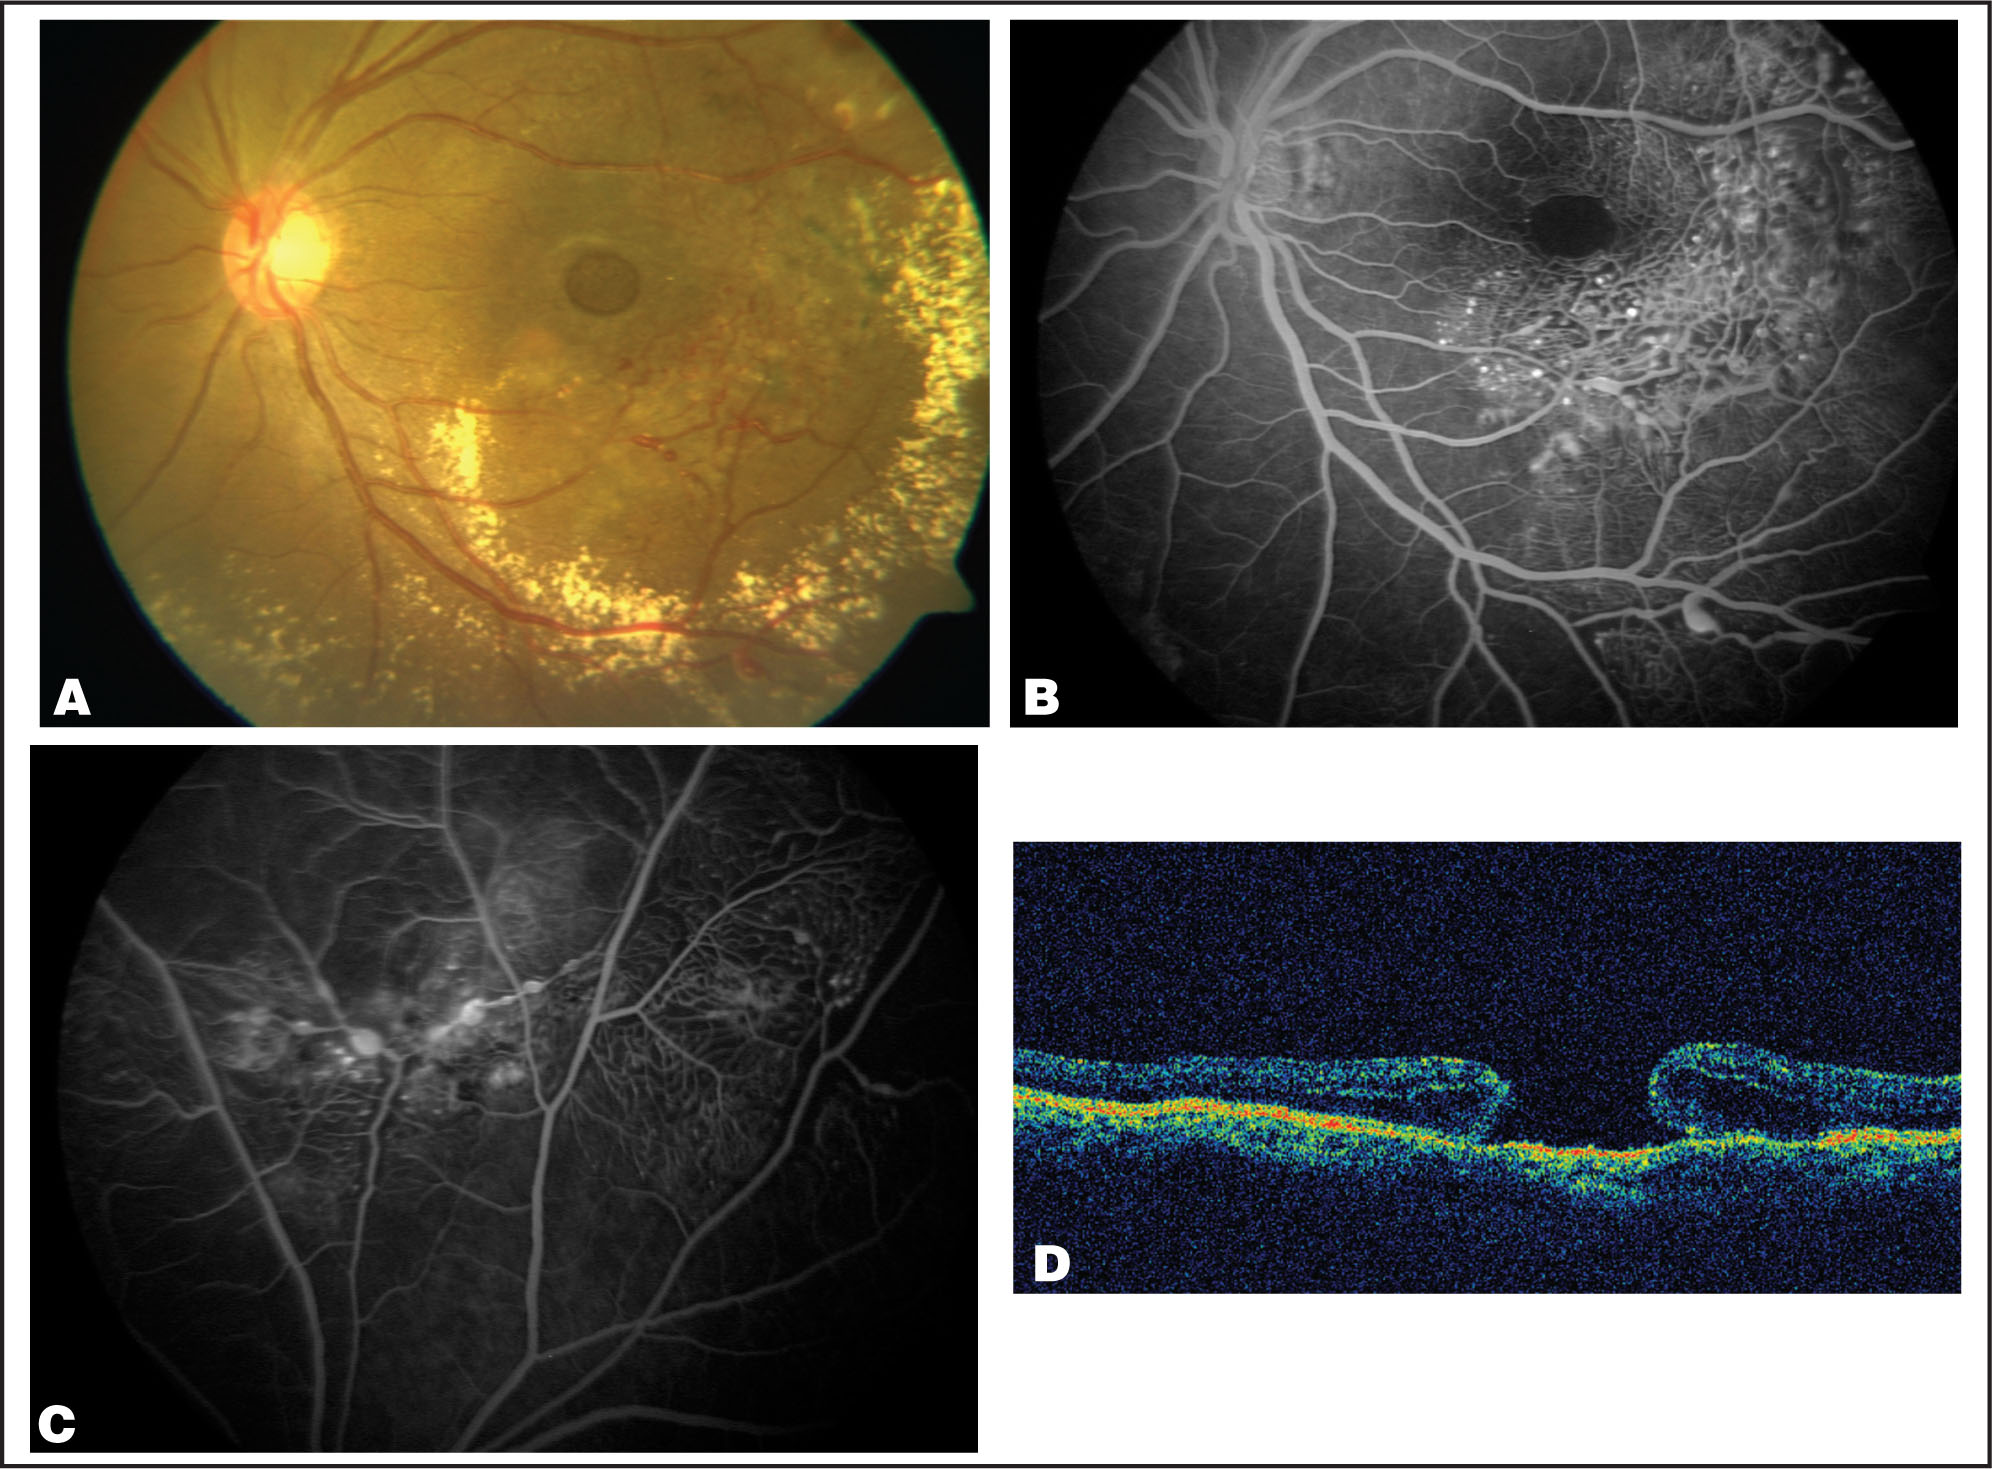 (A) The Left Eye Shows Circinate Intraretinal Exudation Around the Macula with a Full-Thickness Macular Hole. Telangiectatic Vessels Are Visible Inferiorly and Temporally with Pigmentary Changes. (B) Fluorescein Angiogram Demonstrating Anomalous Dilated Vessels with Saccular Dilatations. Hypofluorescence Demarcates the Area of the Macular Hole. (C) Fluorescein Angiogram Showing Telangiectatic Retinal Vessels with Saccular Dilatations in the Superior Periphery. (D) Vertical Optical Coherence Tomography Scan Through the Center of the Macular Hole Showing Full-Thickness Macular Hole.